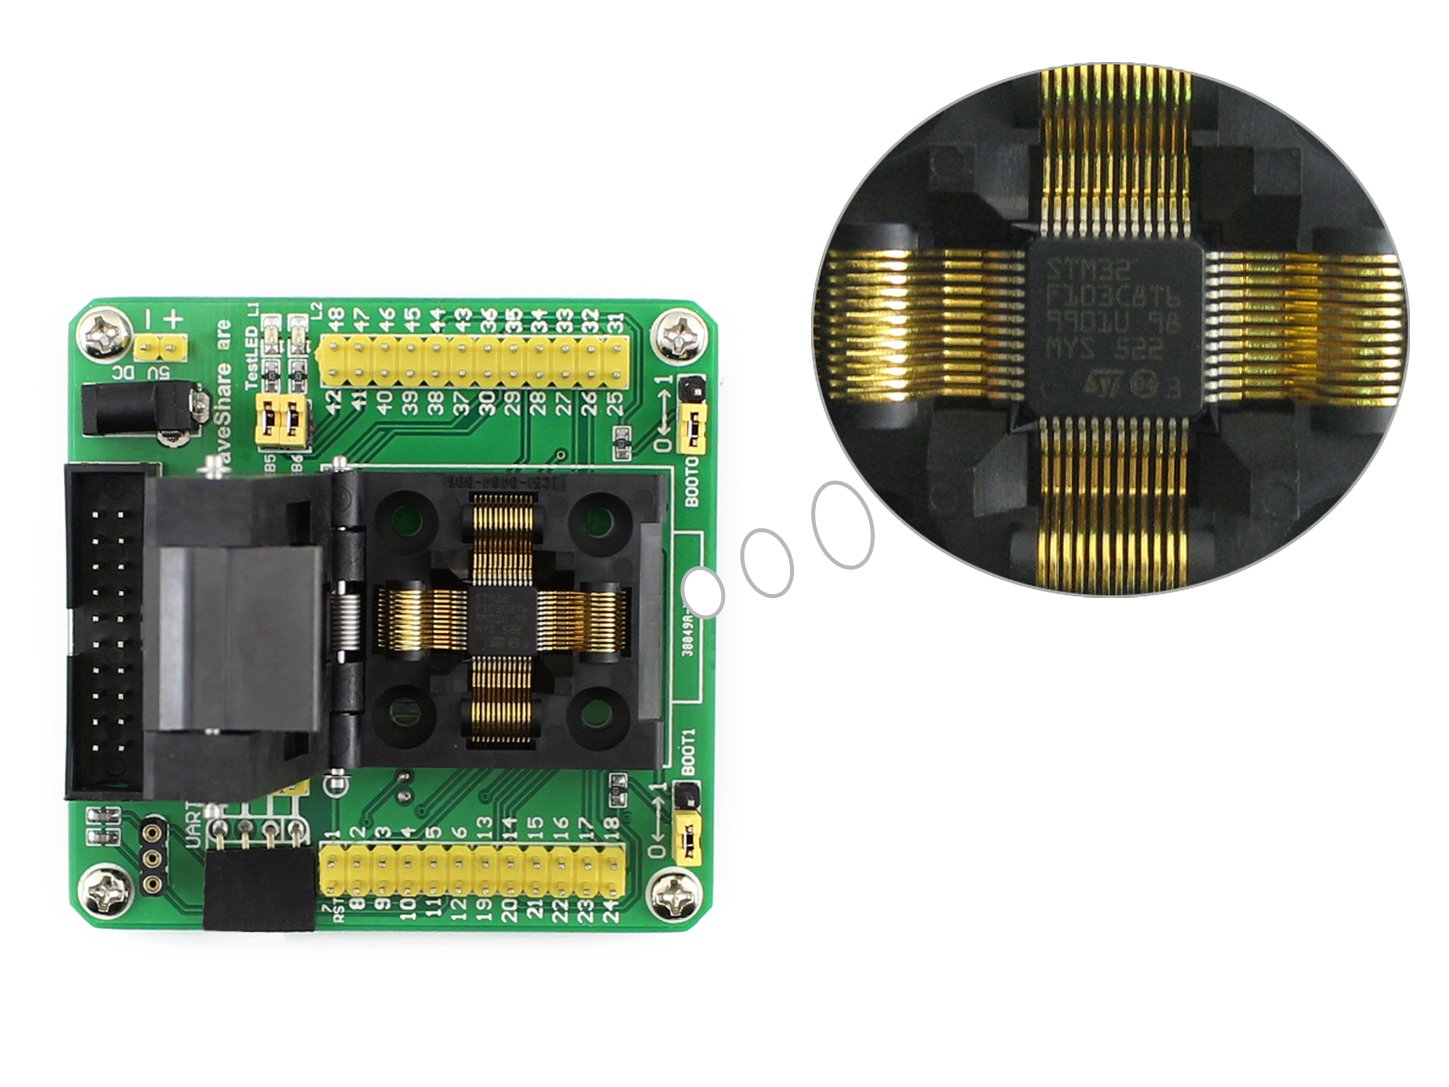 CQRobot Programmer Adapter STM32-QFP48, Yamaichi IC Test and Burn-In Socket With a Simple Board Specifically Designed for STM32 MICrocontroller in QFP48(0.5mm Pitch) Package.